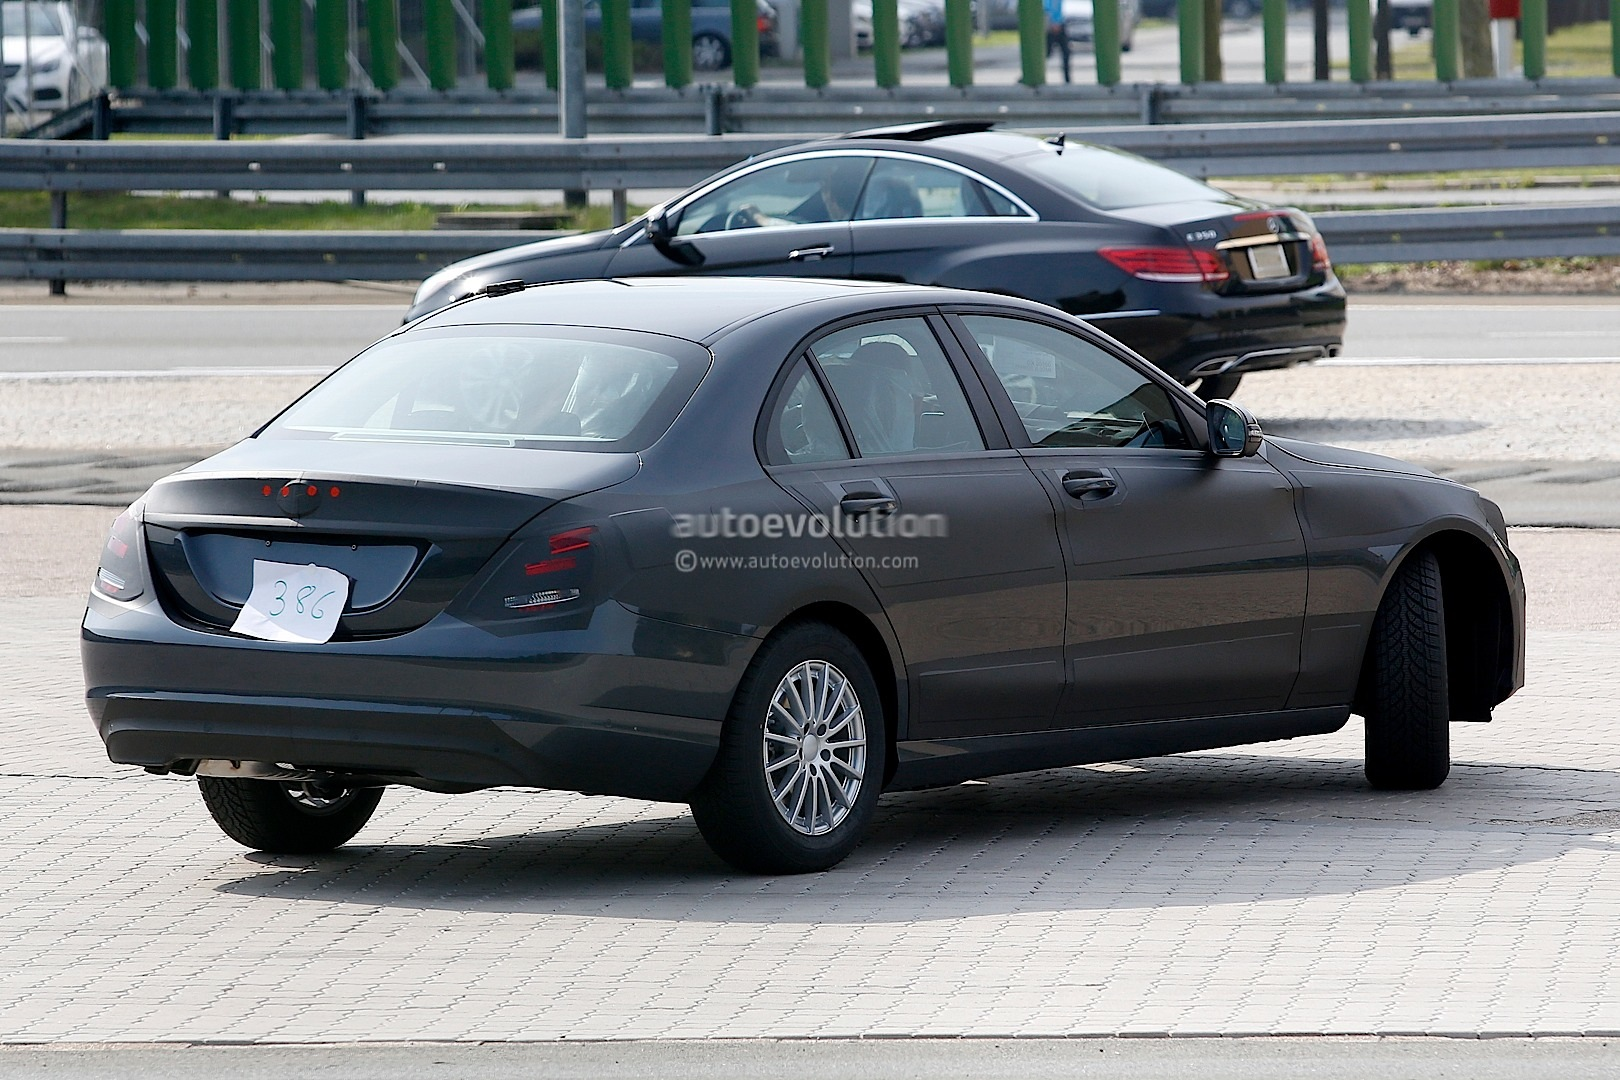 mercedes benz c class w205 sheds more camouflage autoevolution. Black Bedroom Furniture Sets. Home Design Ideas